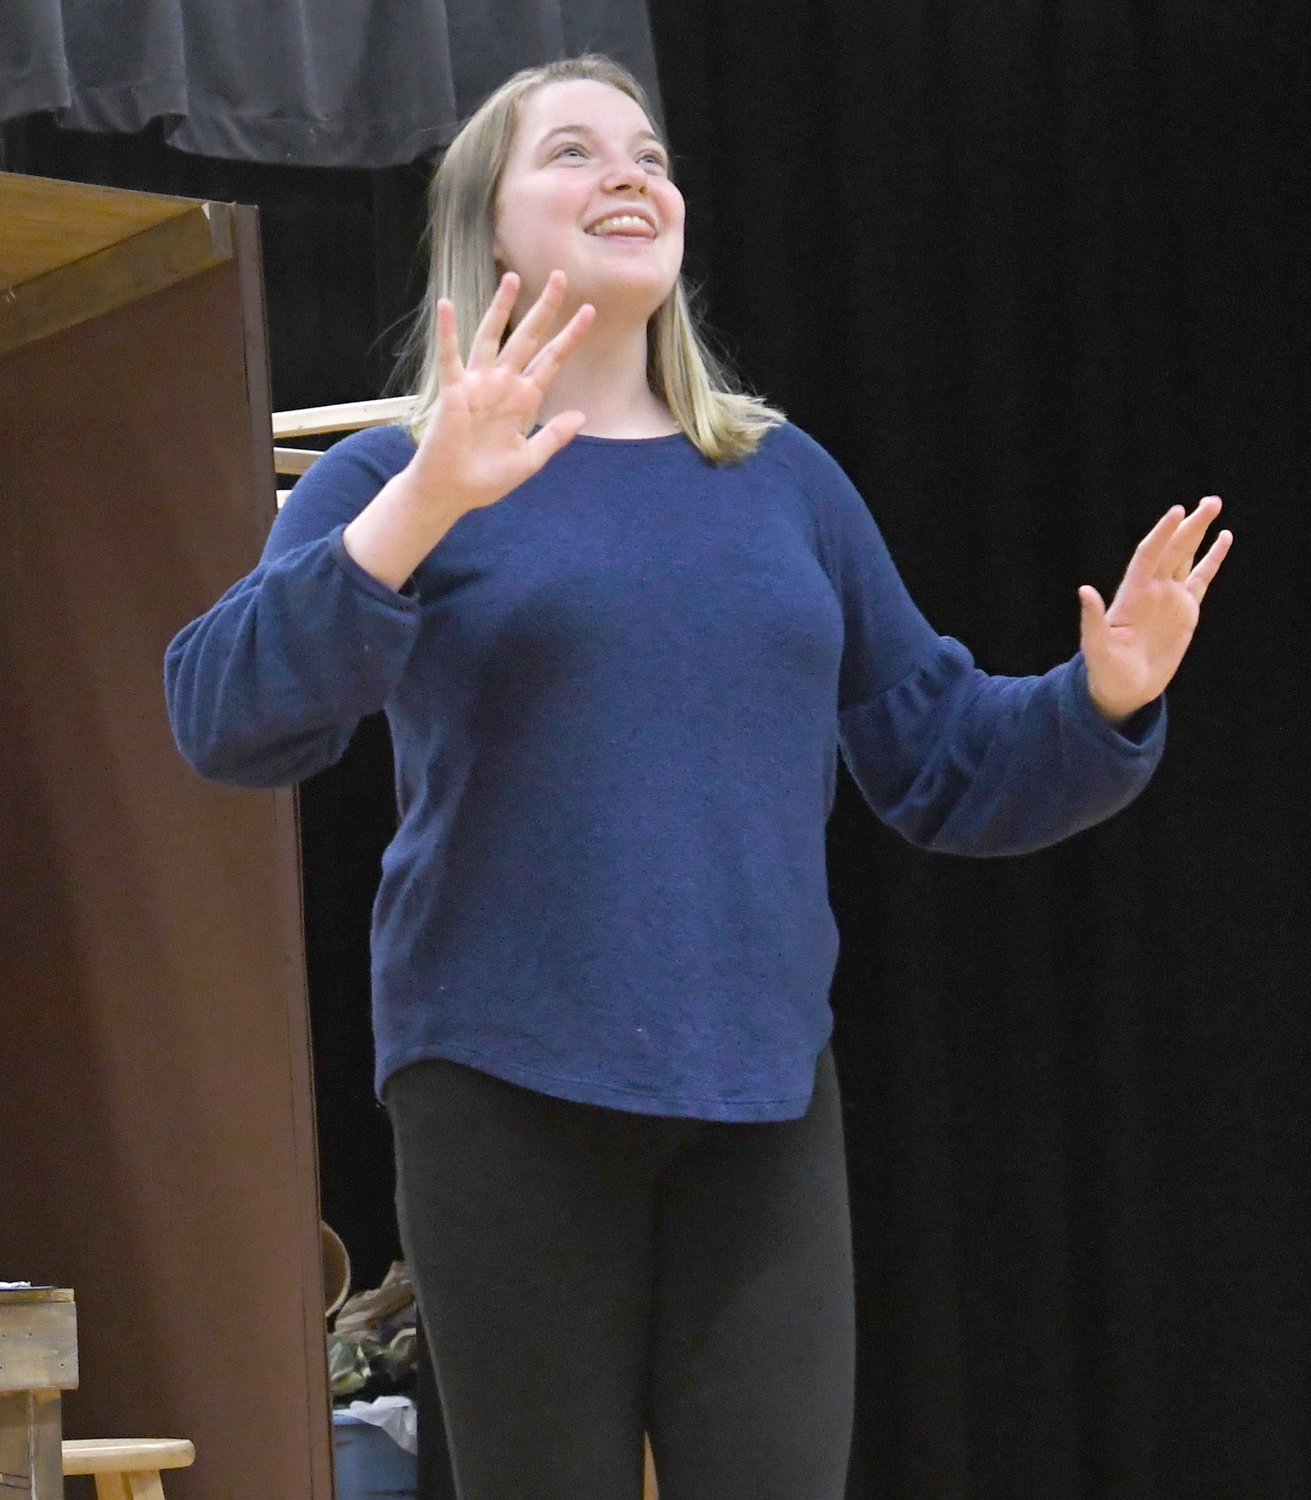 DO-RE-MI — Maria, played by Meghan Donnelly, sings a song during rehearsals for The Sound of Music at Westmoreland High School.  Students will present their performance at the high school auditorium March 21-23.